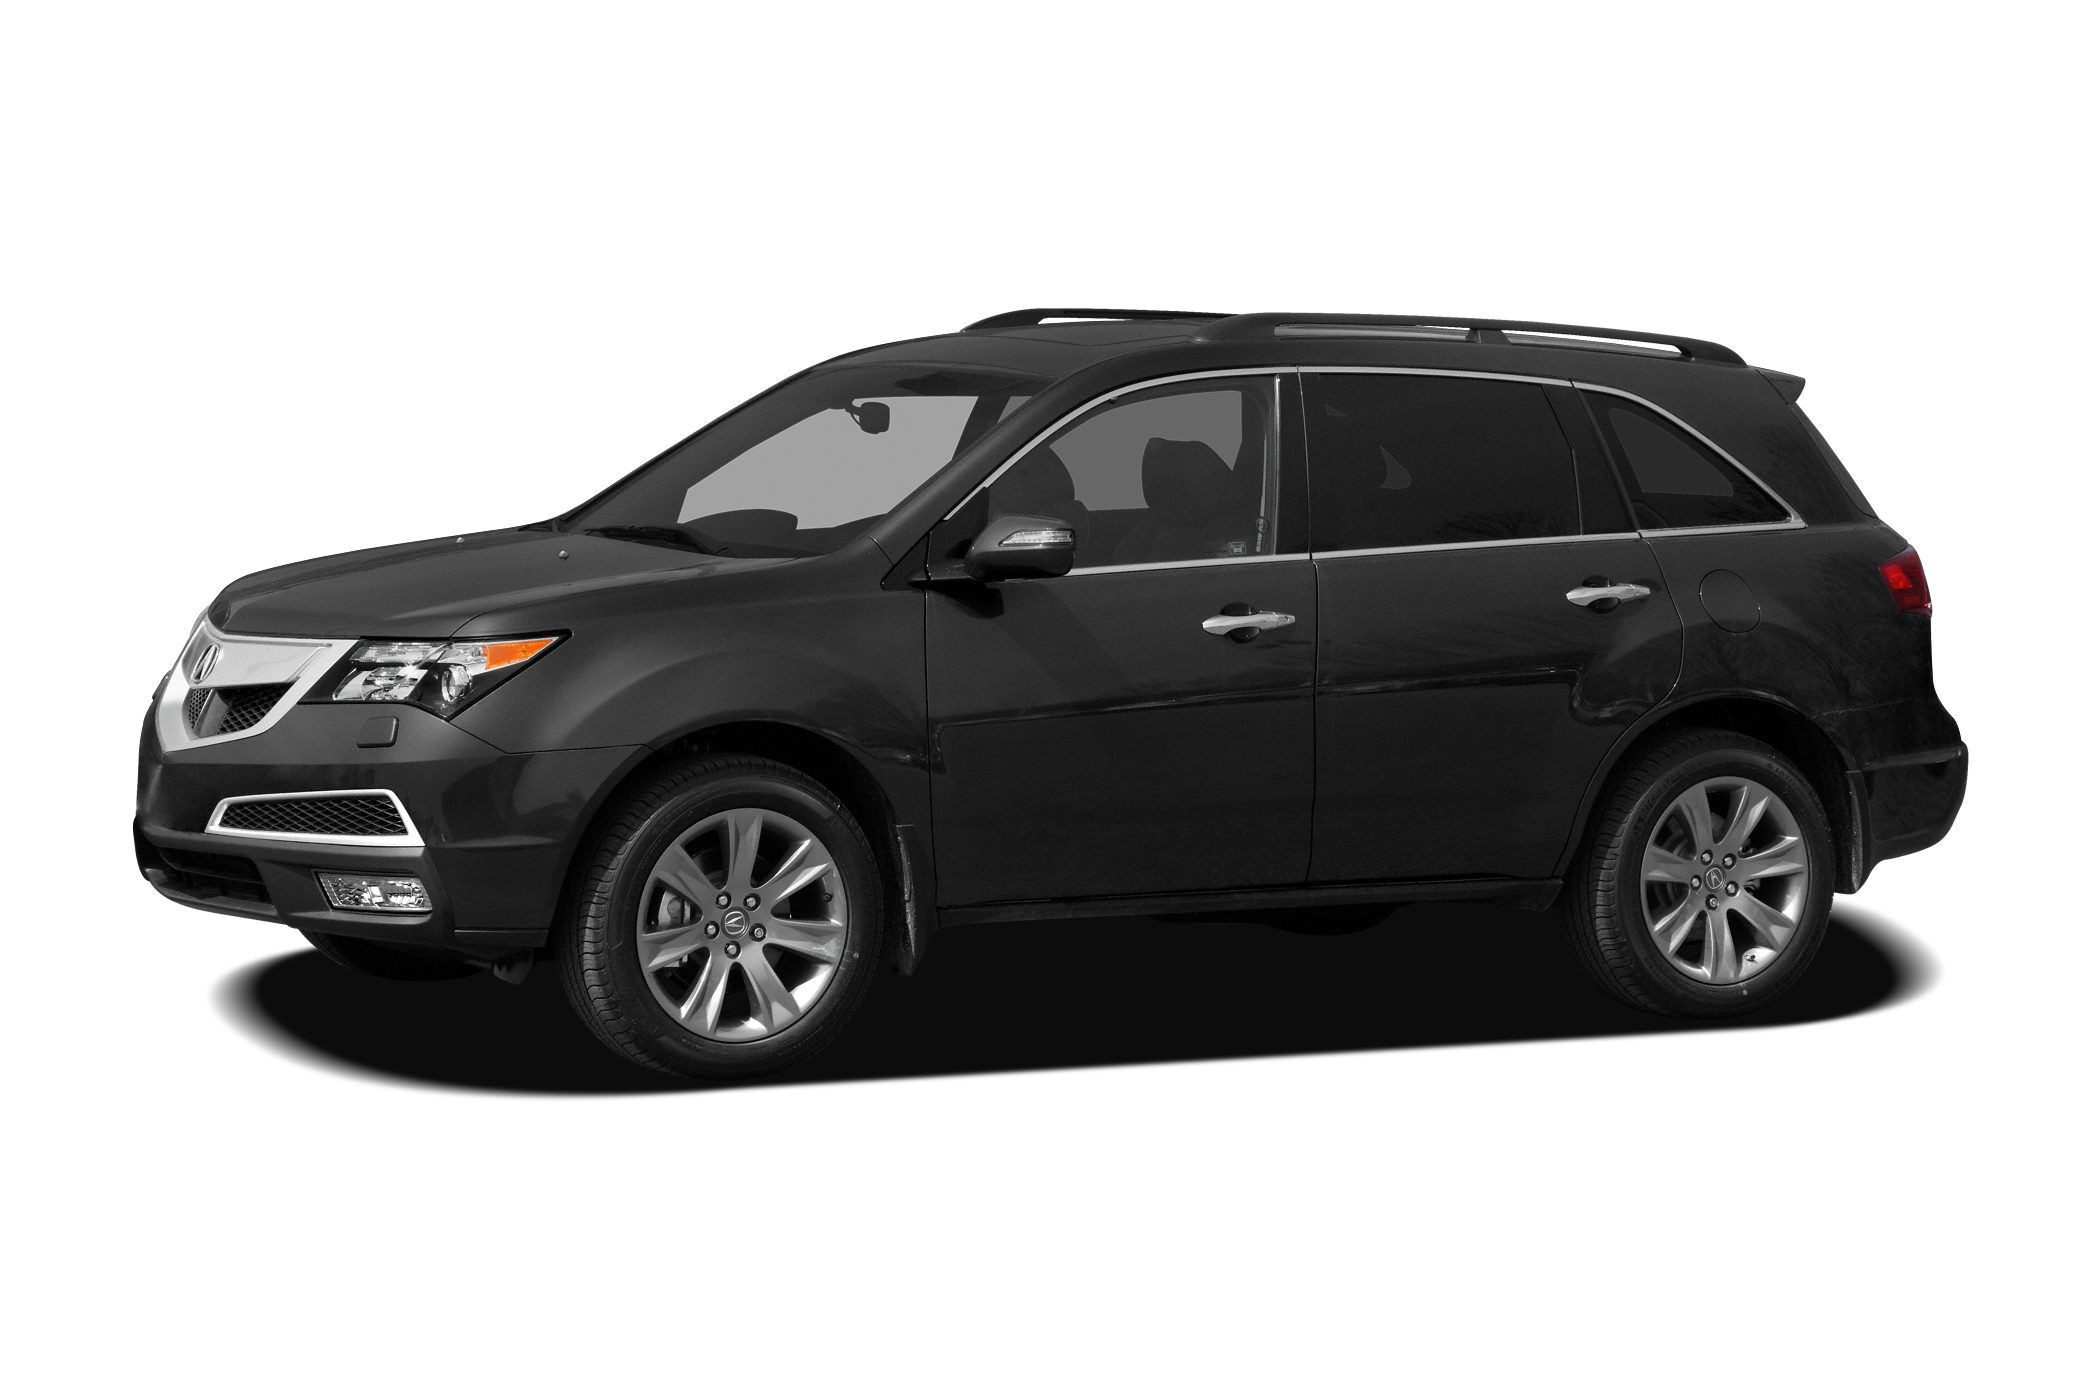 2010 Acura MDX 37 Advance Join us at Regal Honda Real Winner Want an SUV to make heads turn and